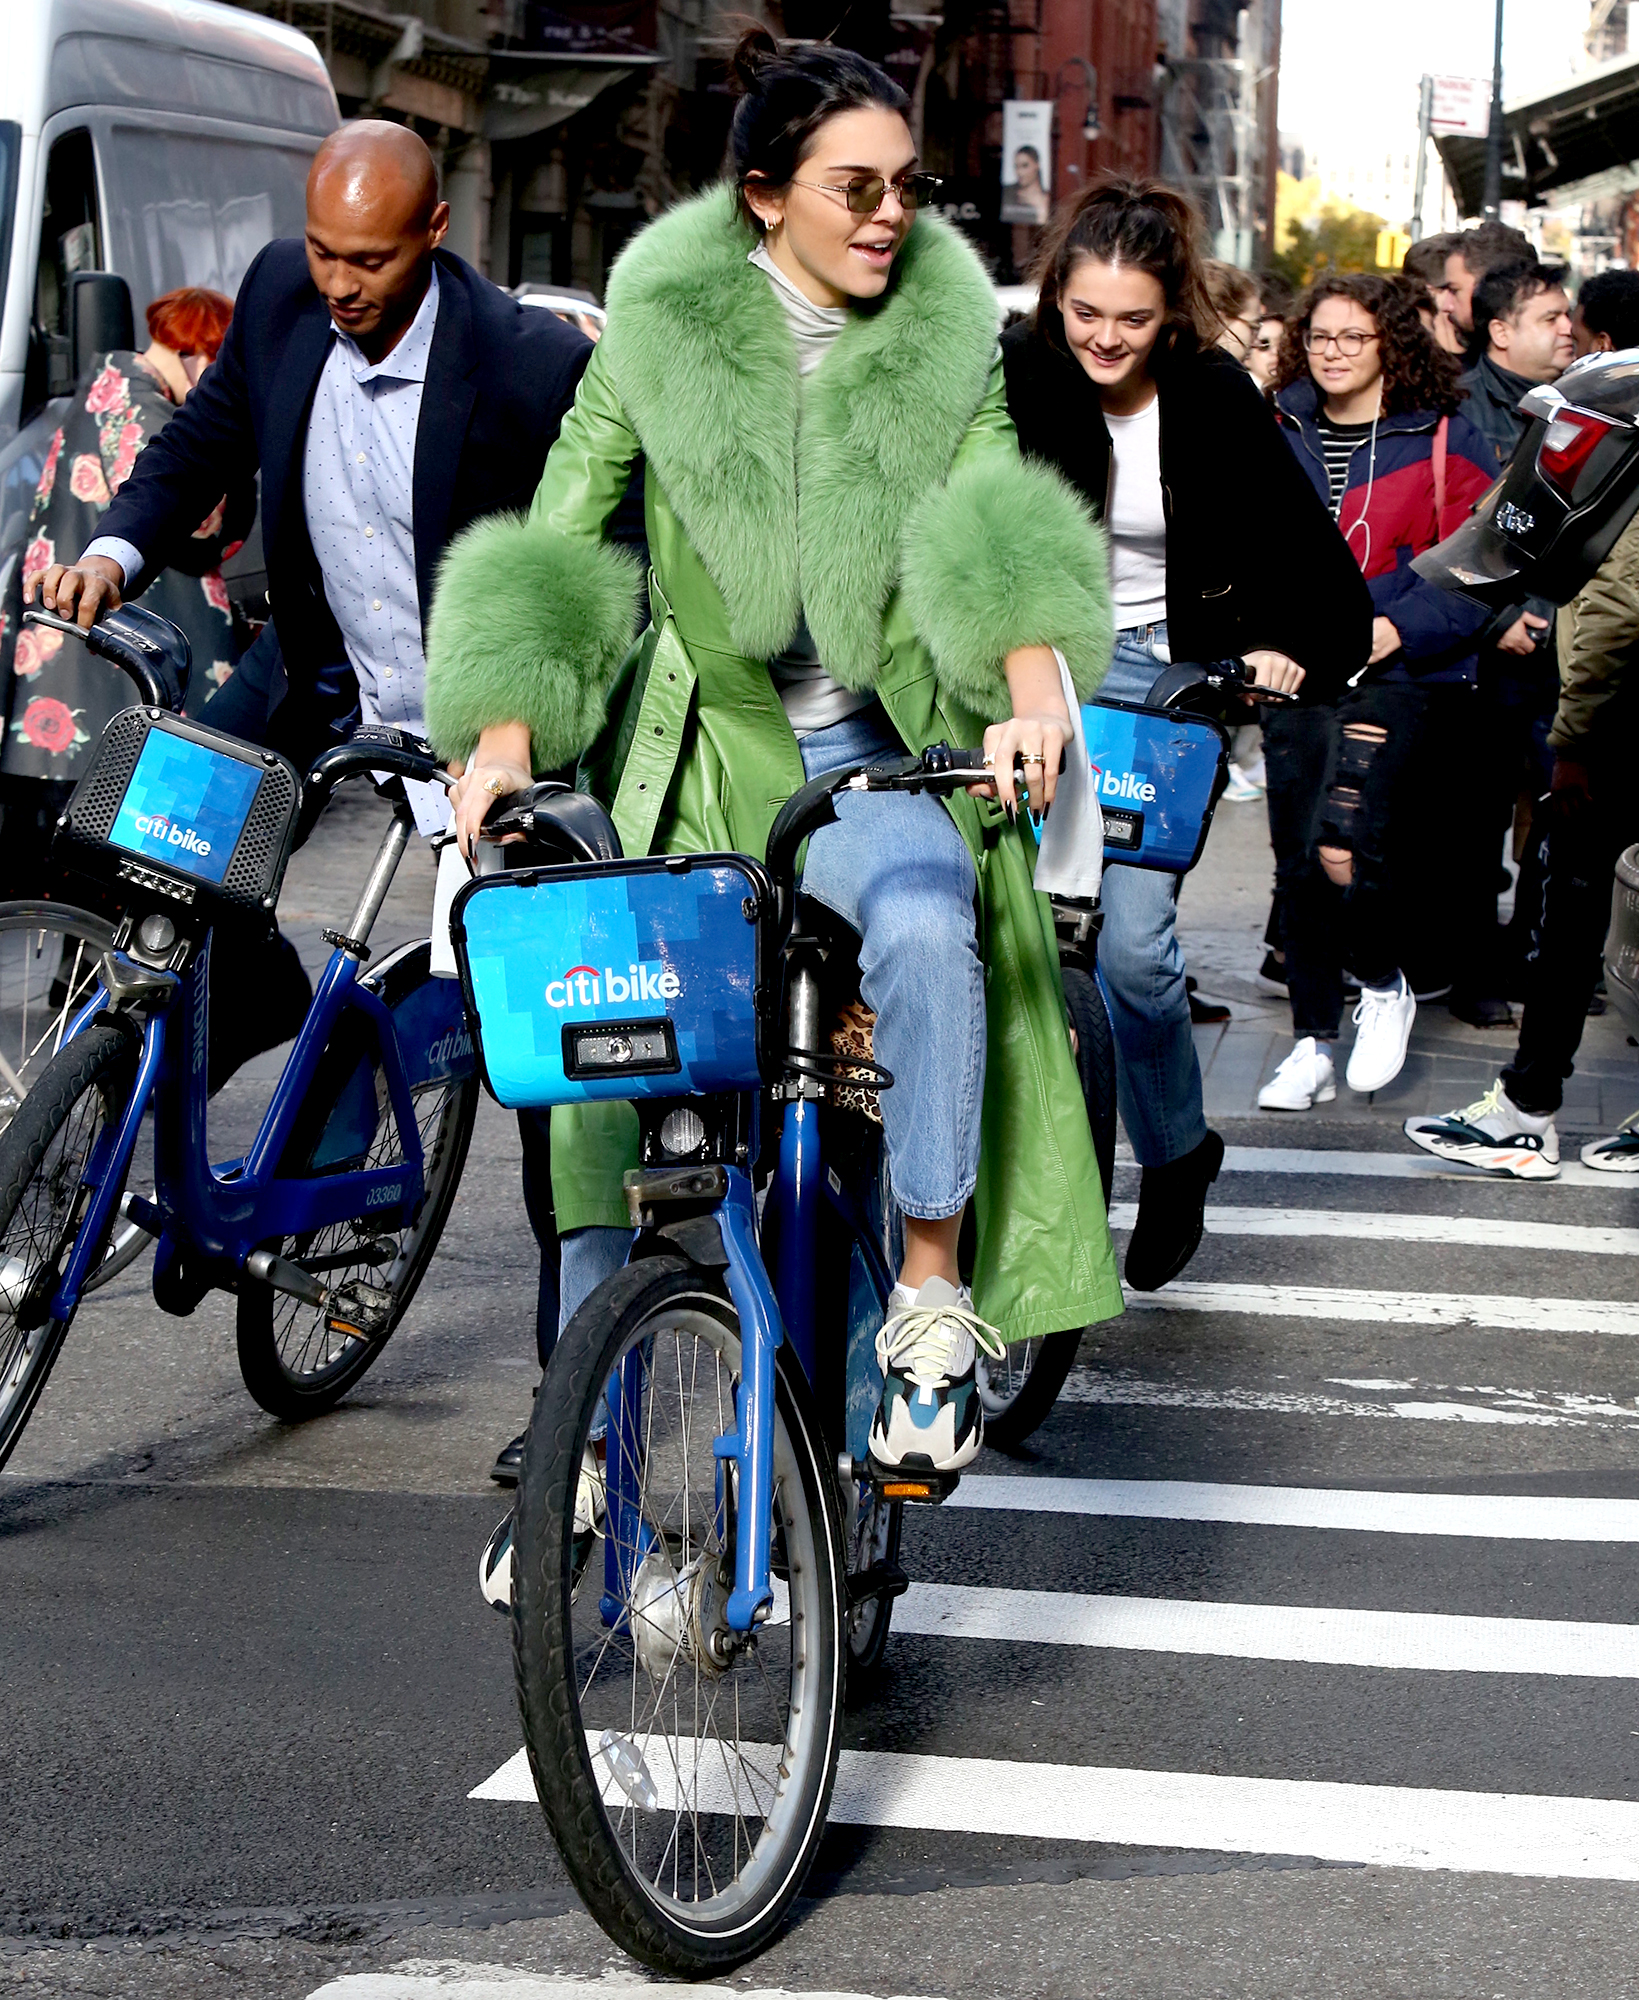 kendall-jenner-biking - The model led her bodyguard and a friend through the Soho neighborhood of NYC on a Citi Bike on November 3, 2018.